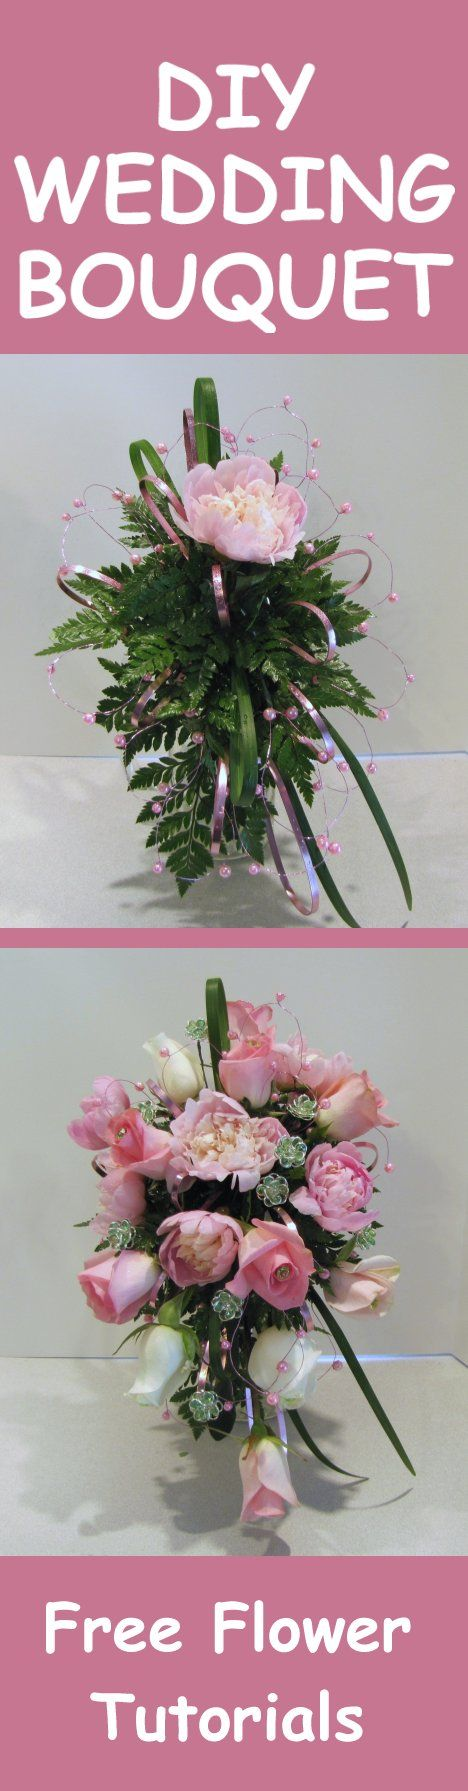 Bridesmaid bouquets tutorial easy and free step flower tutorials bridesmaid bouquets tutorial easy and free step flower tutorials learn how to make bridal bouquets wedding corsages groom boutonnieres church izmirmasajfo